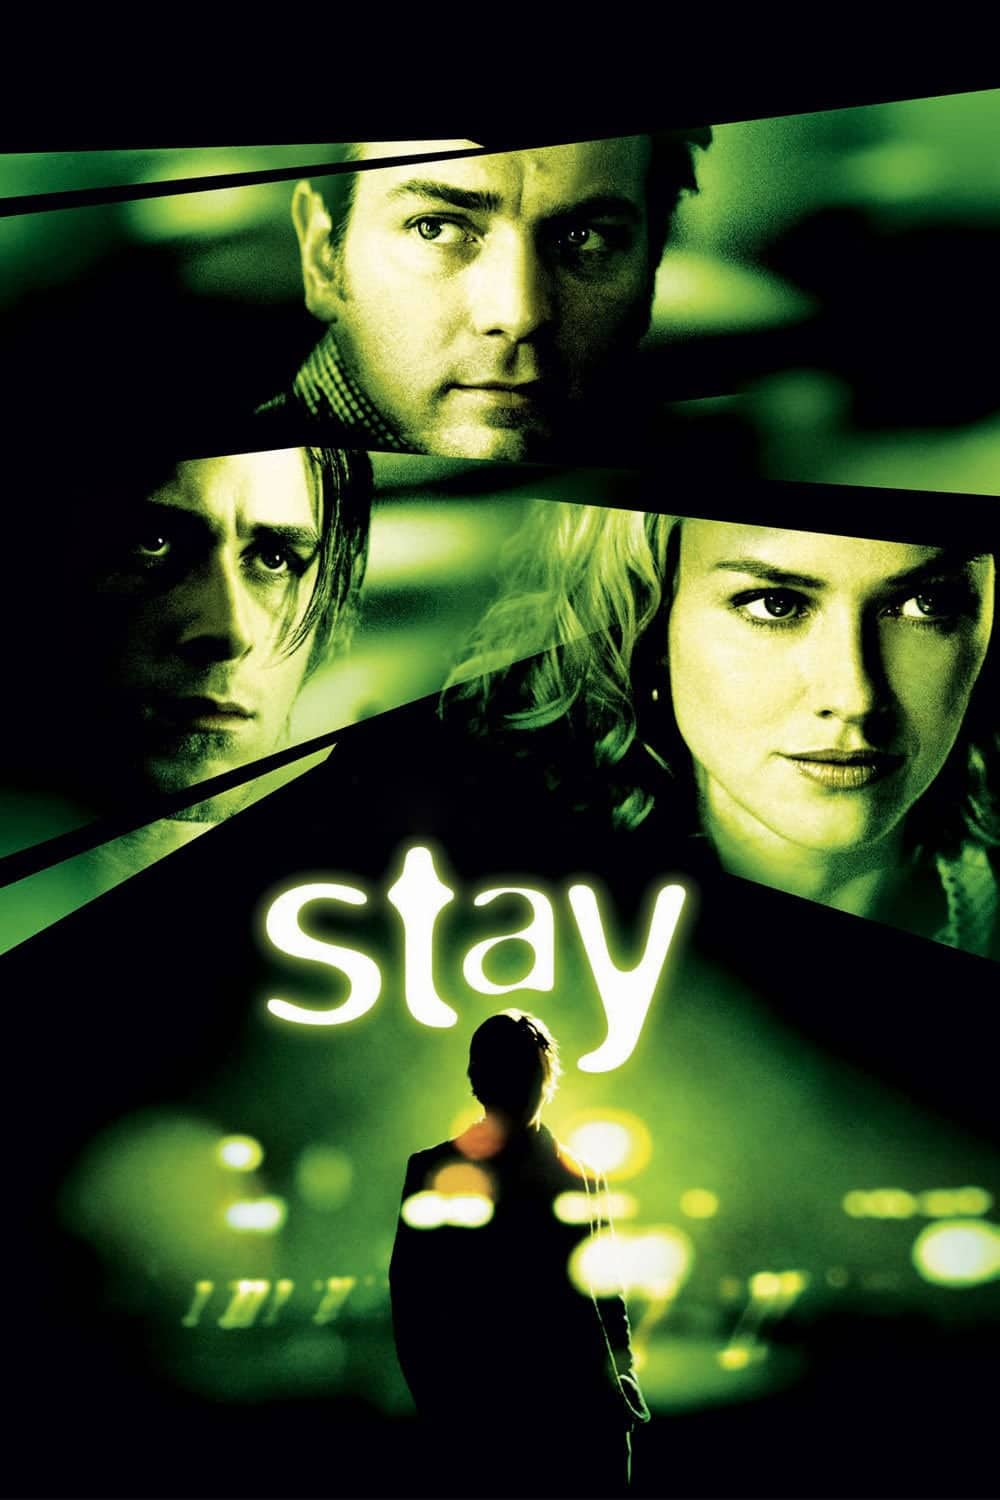 Stay, 2013